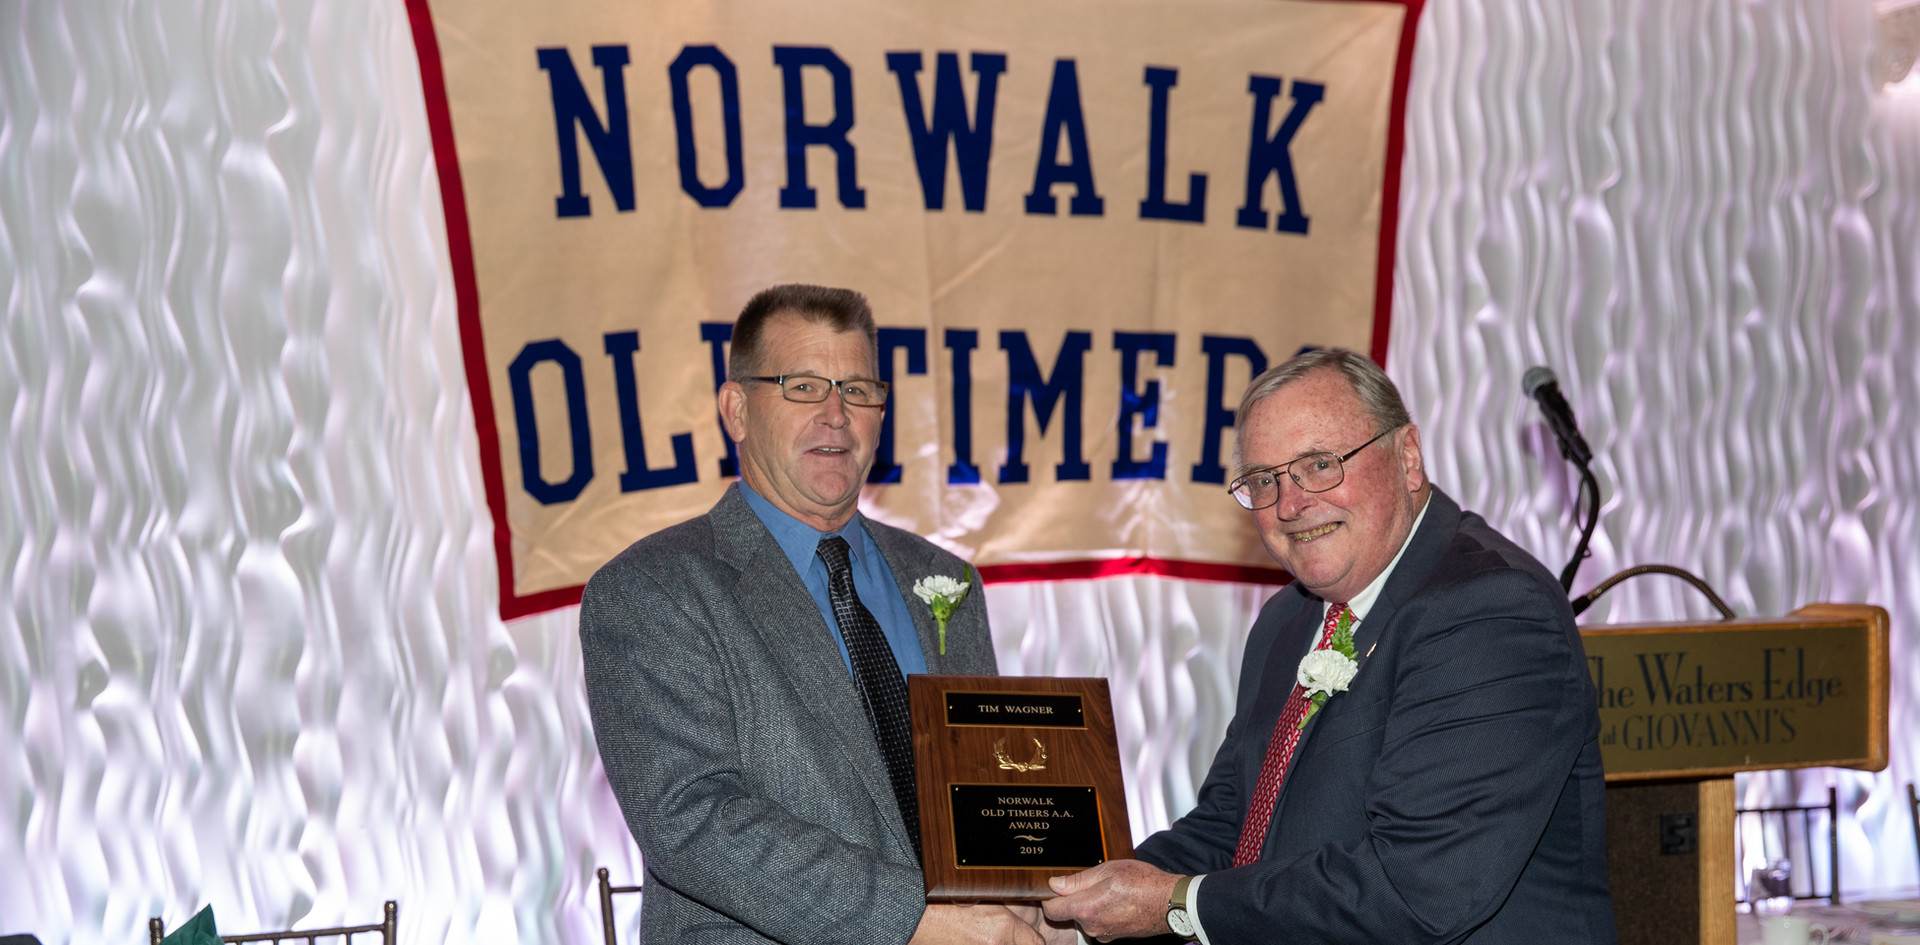 Tim Wagner receives his award-commemorating plaque from Norwalk Old Timers Association president Jack Couch.  (photo by Josh Molaver)